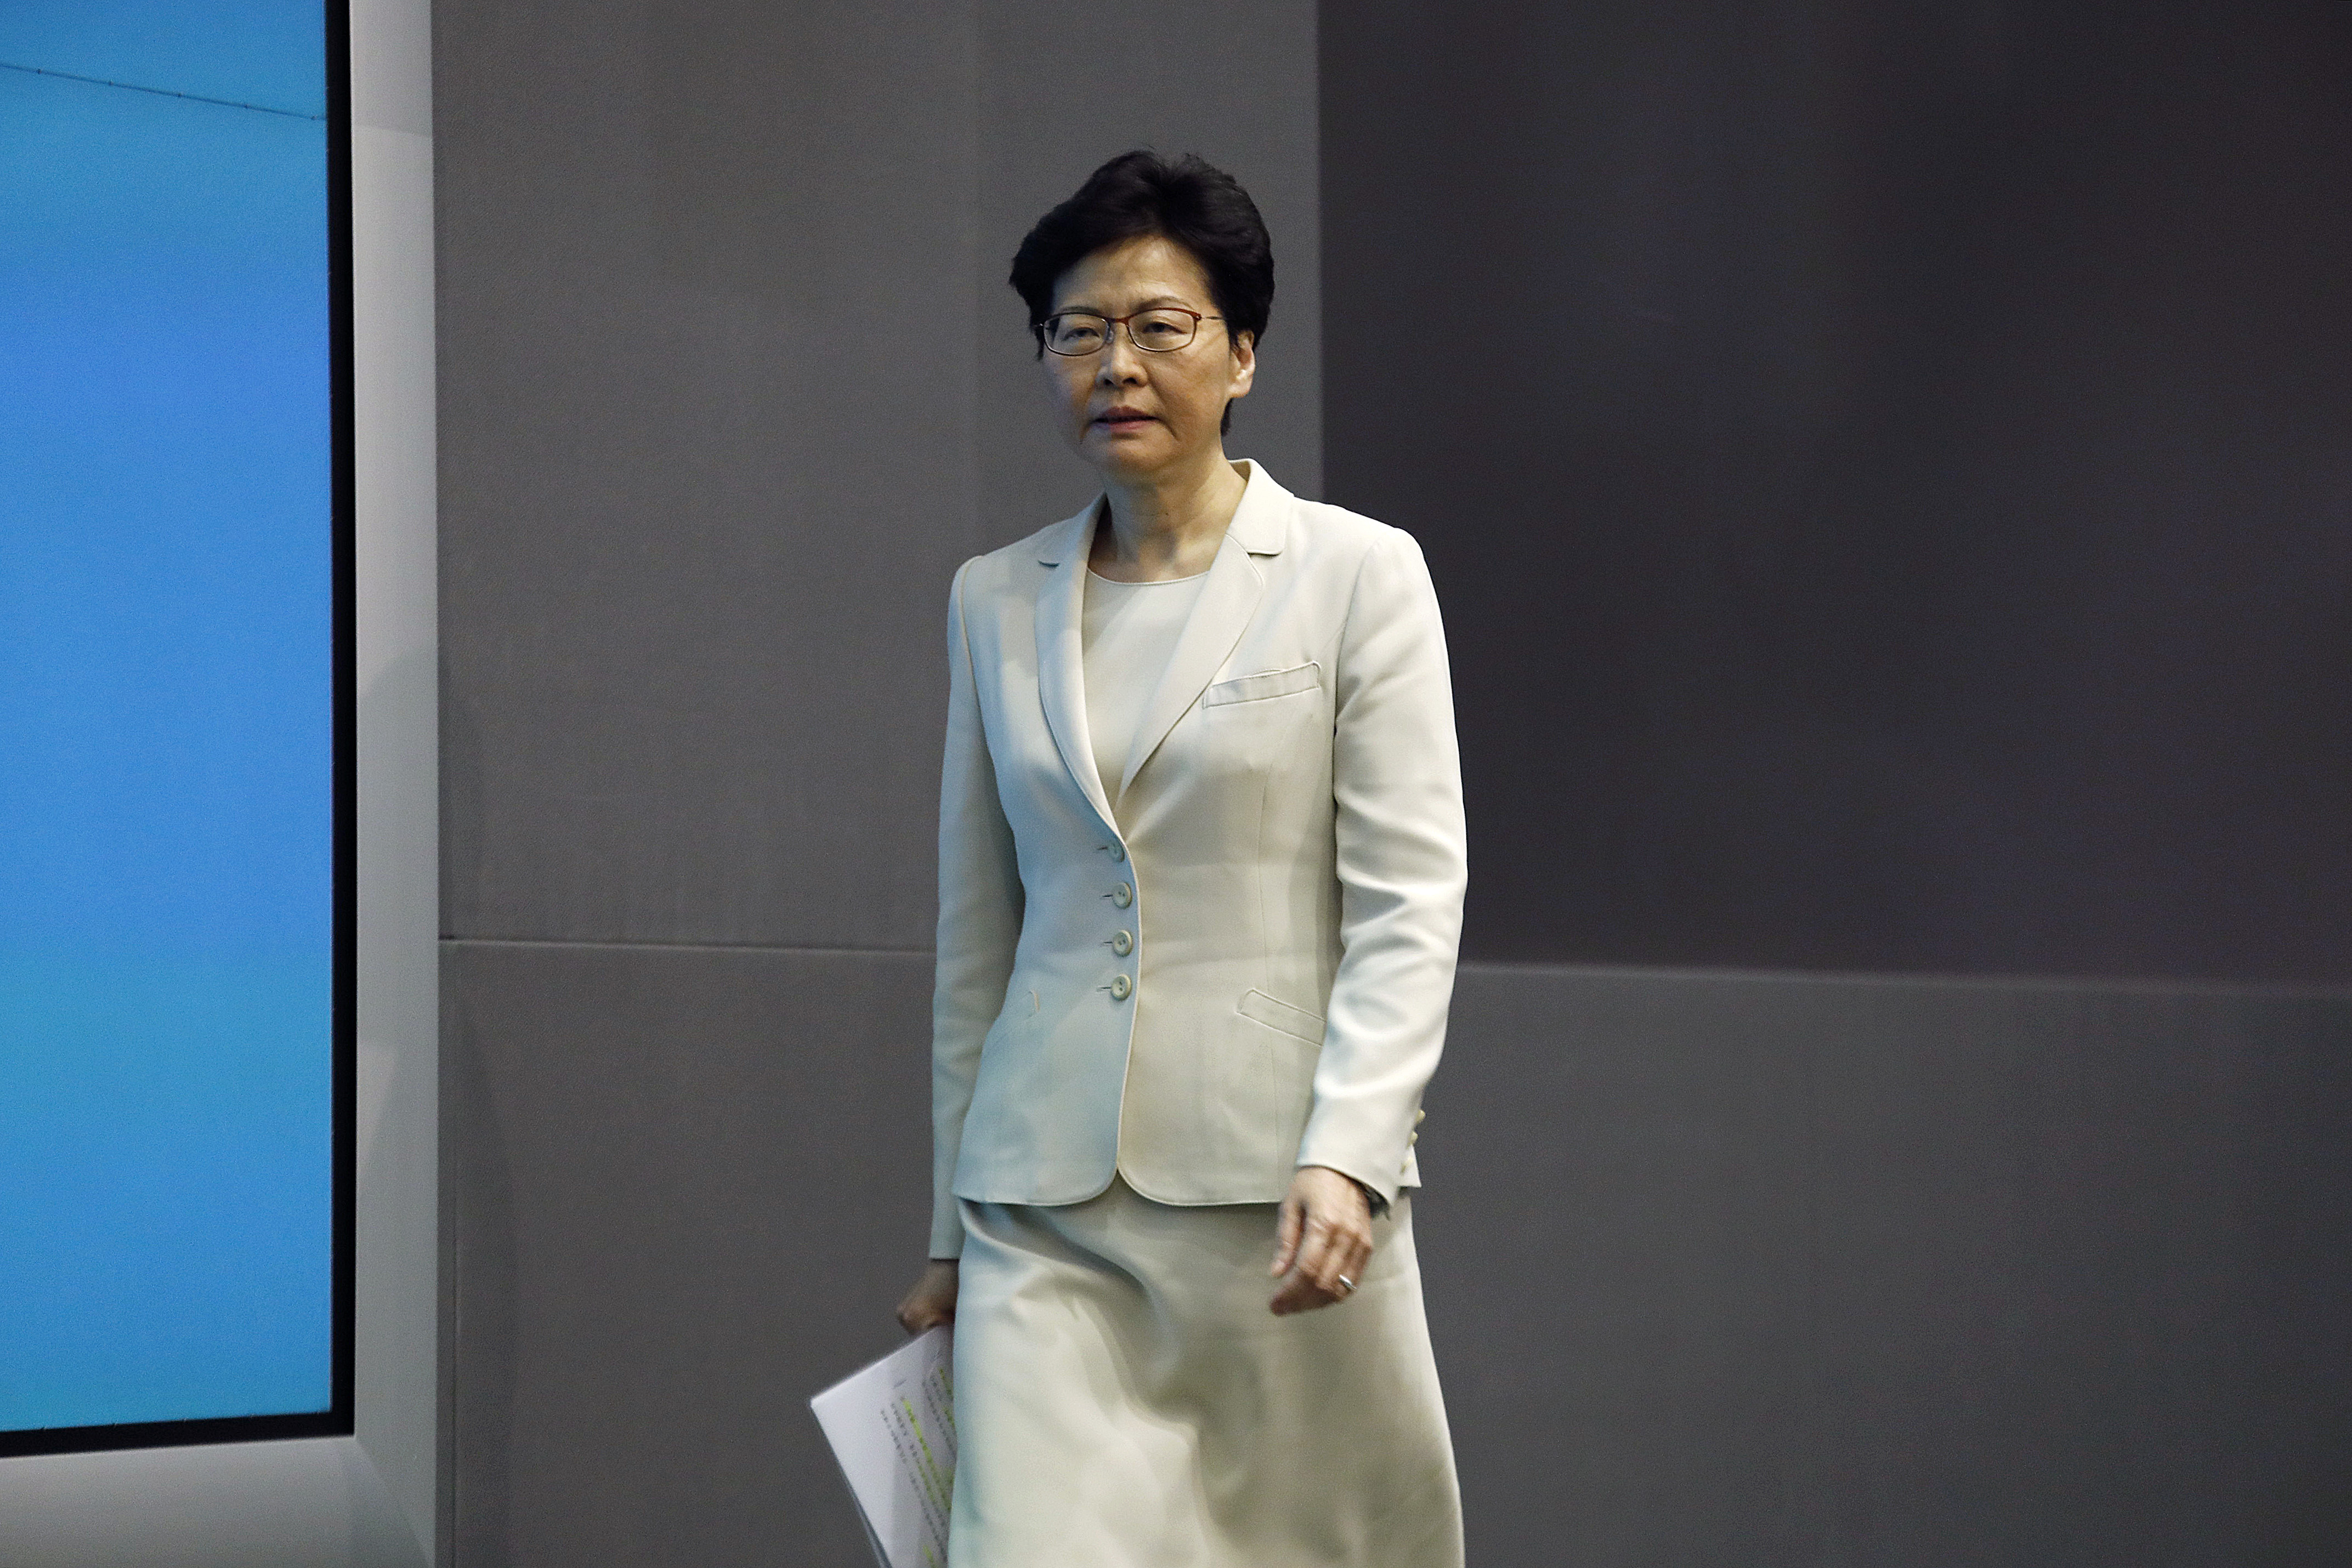 Hong Kong leader Carrie Lam is facing the wrath of her